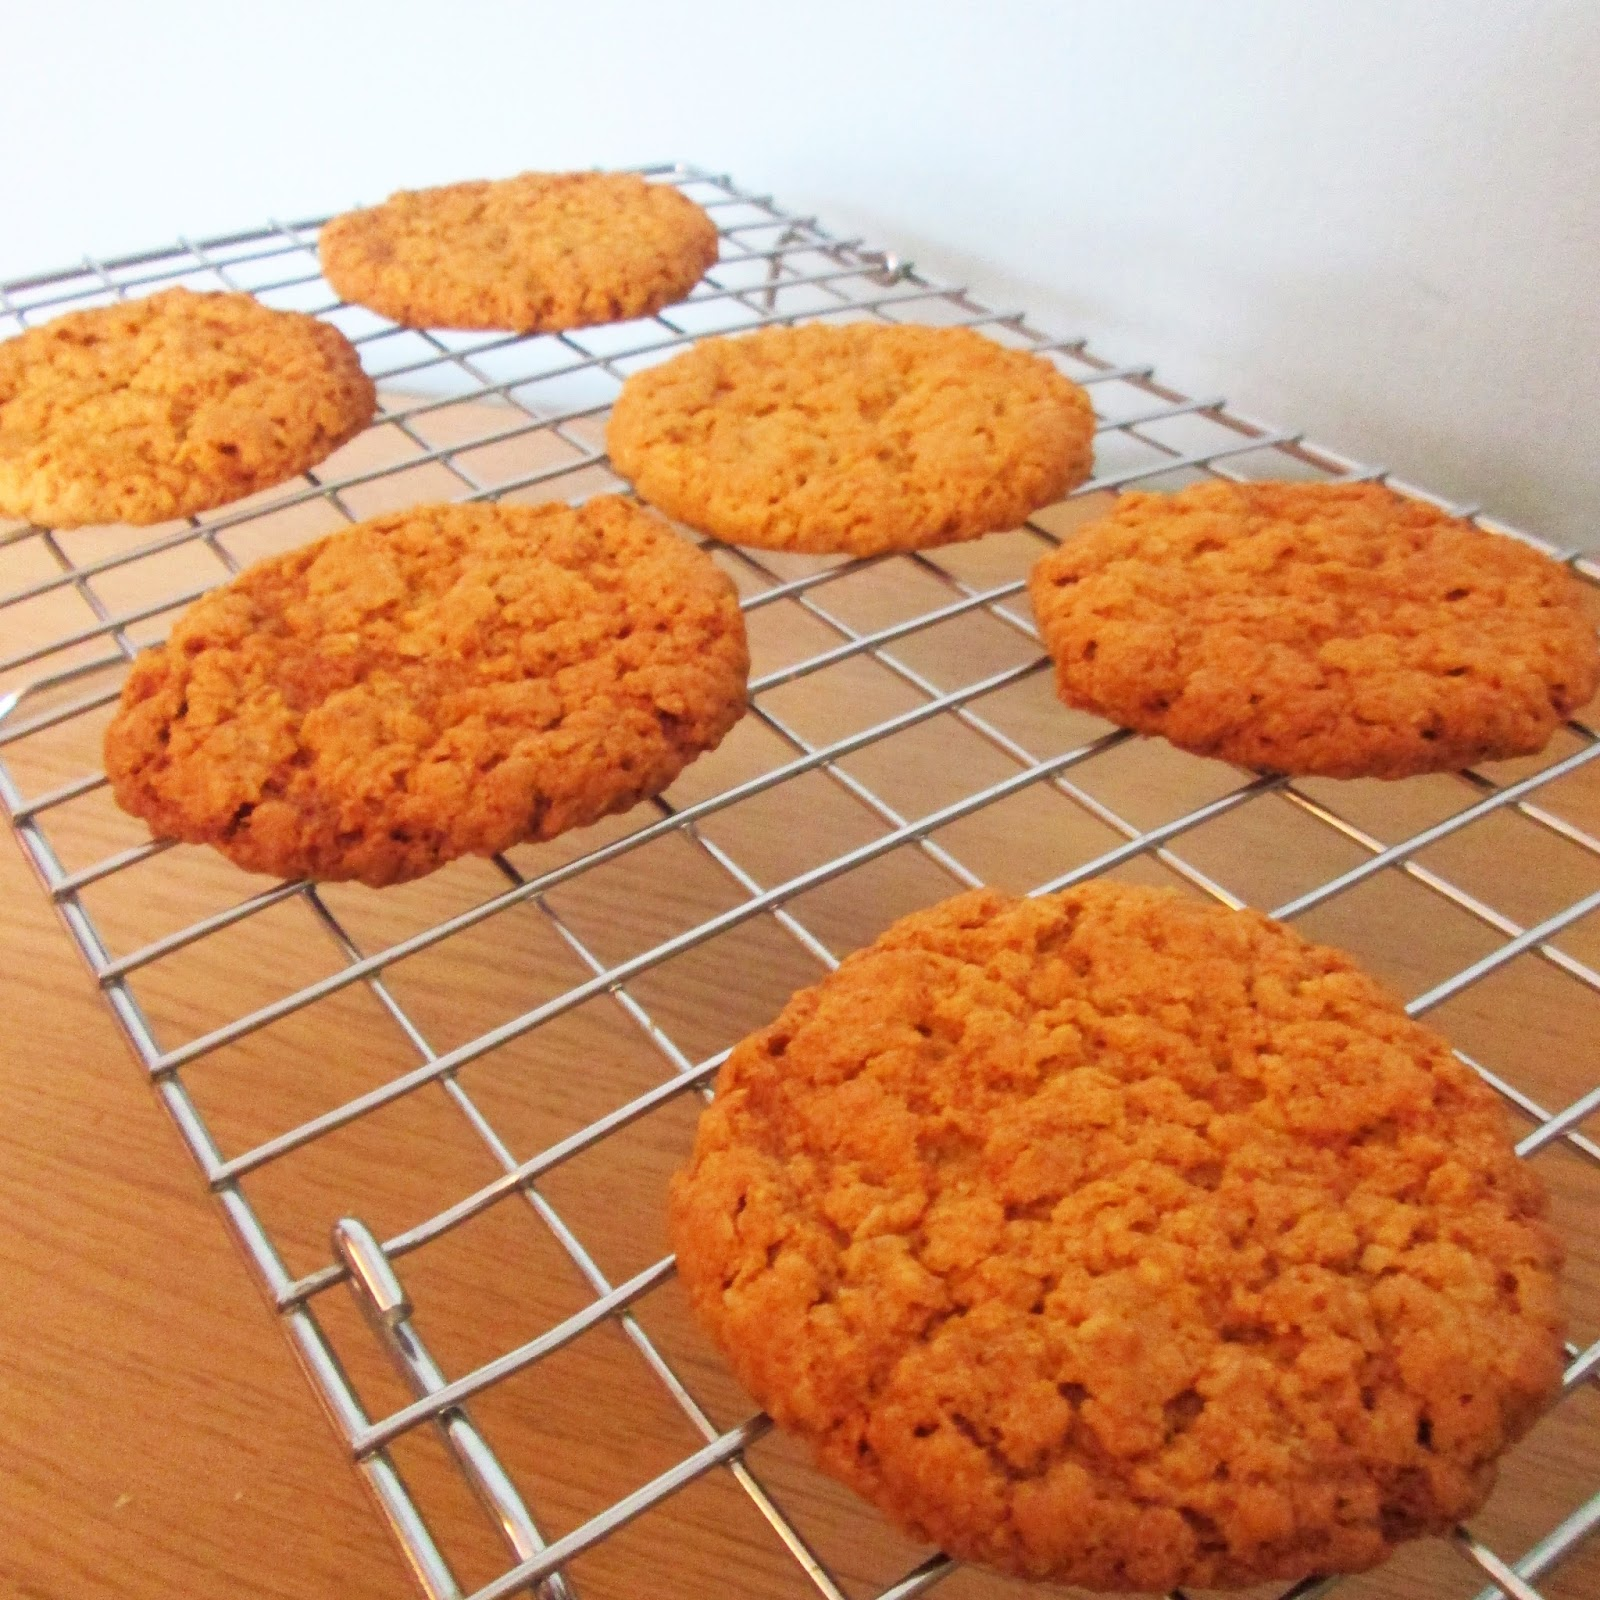 Messy Kitchen After Baking: THE MESSY KITCHEN: Oaty Cookies (Hobnobs